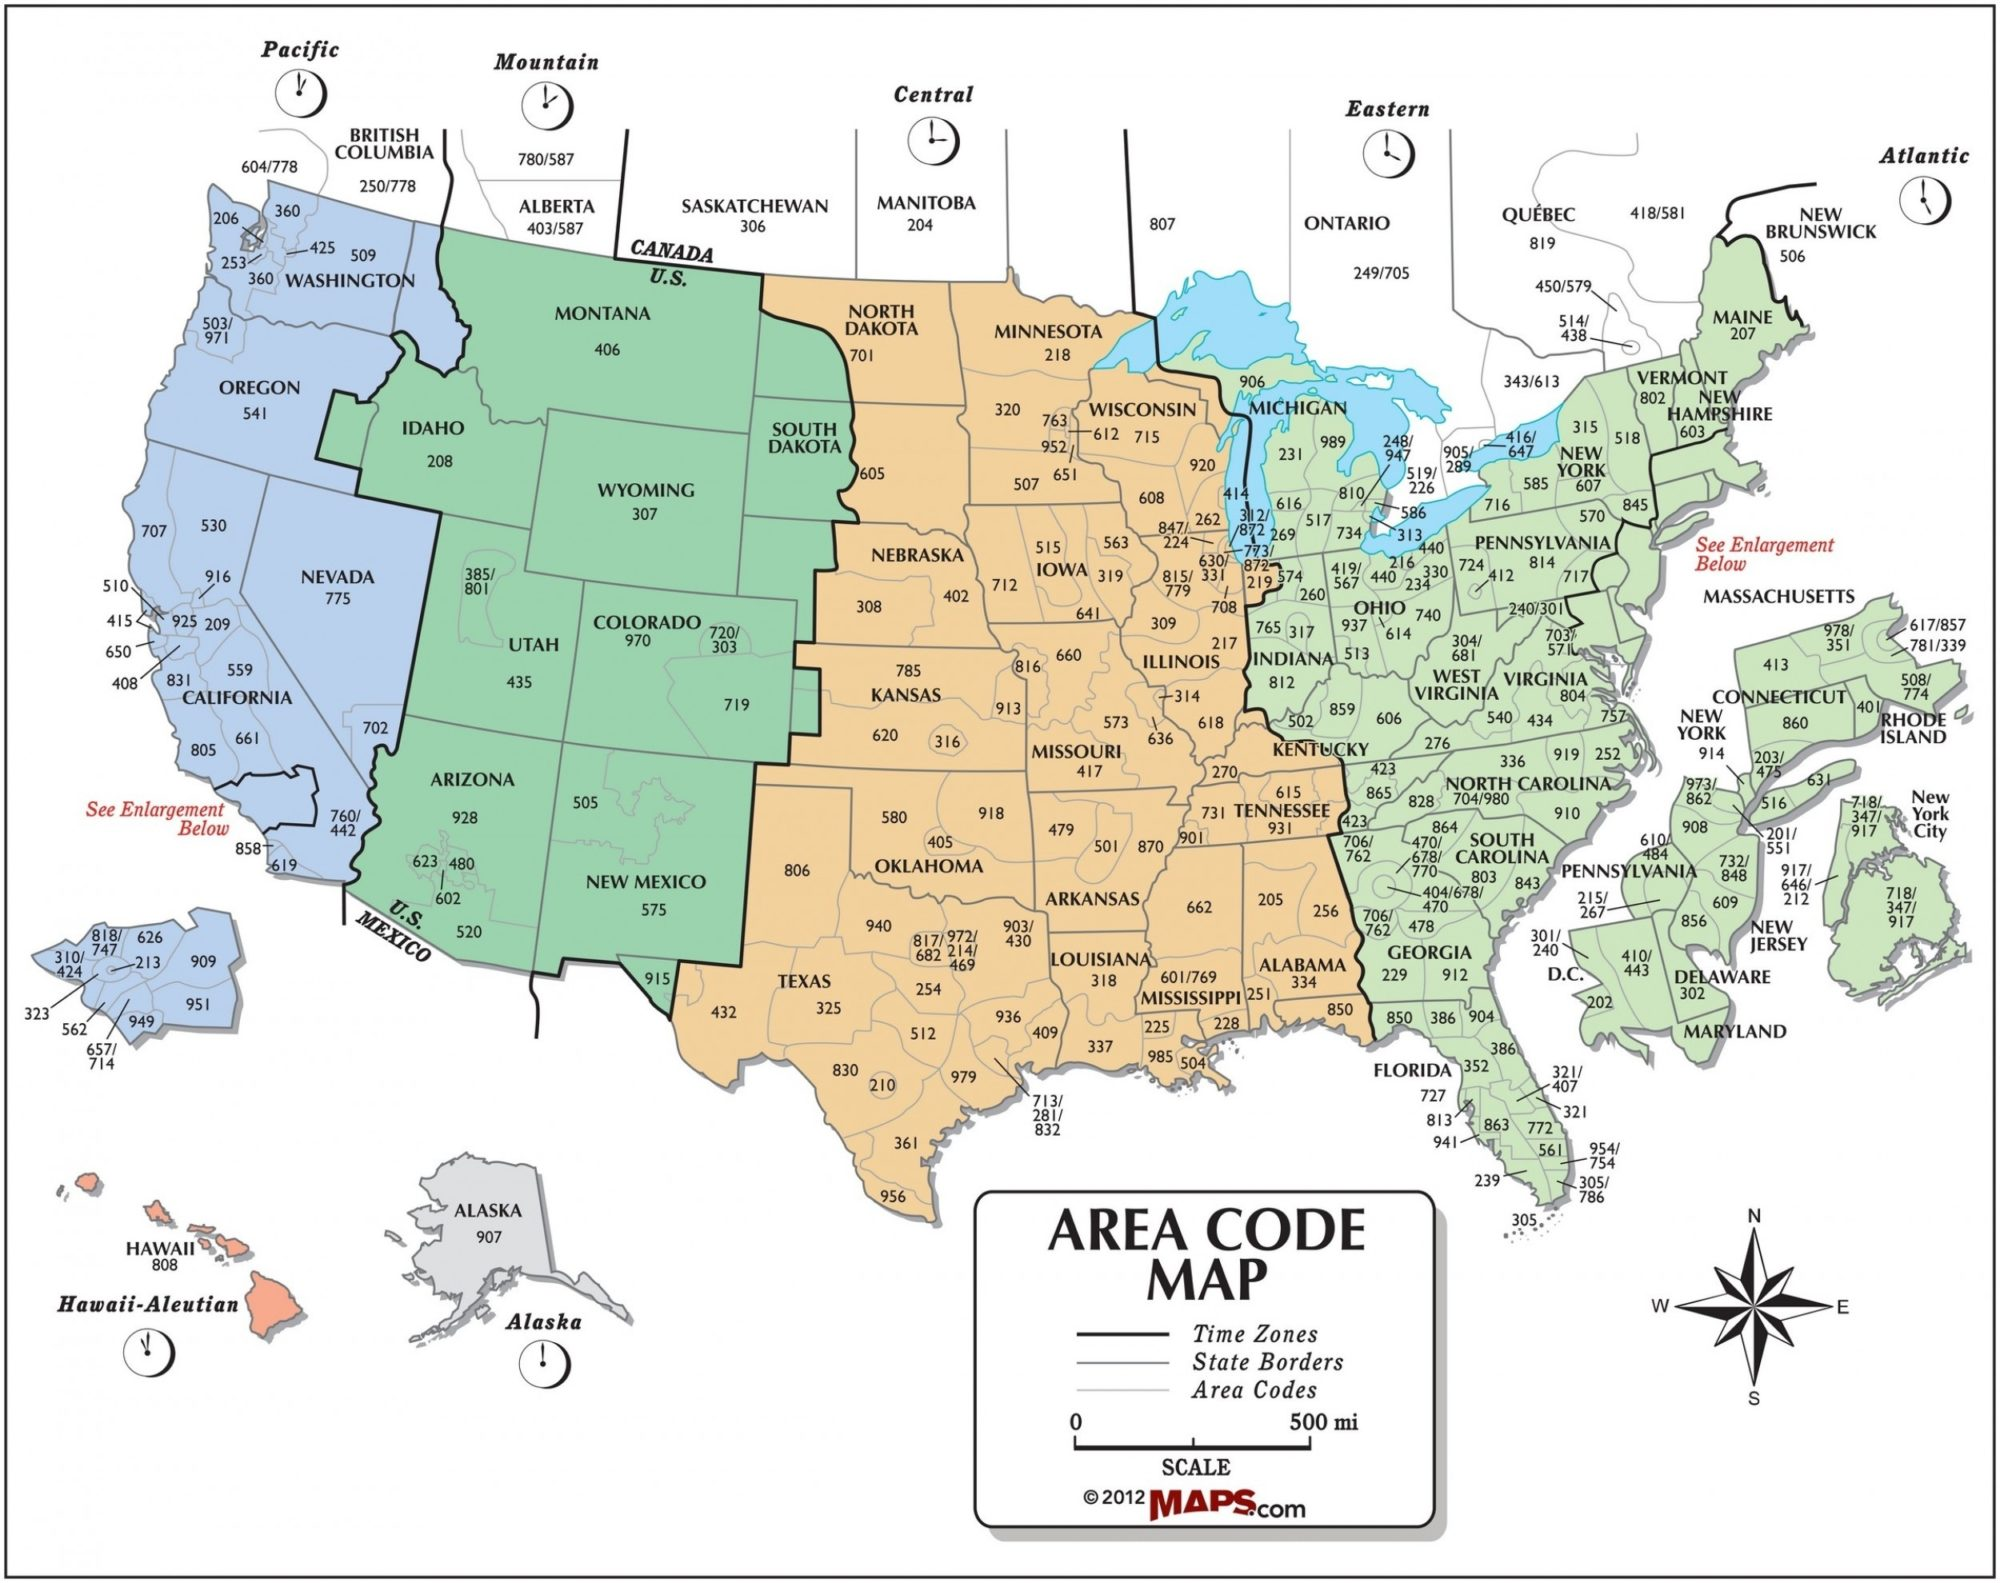 united states time zone map 2017 Map Of United States With States And Time Zones لم يسبق له مثيل